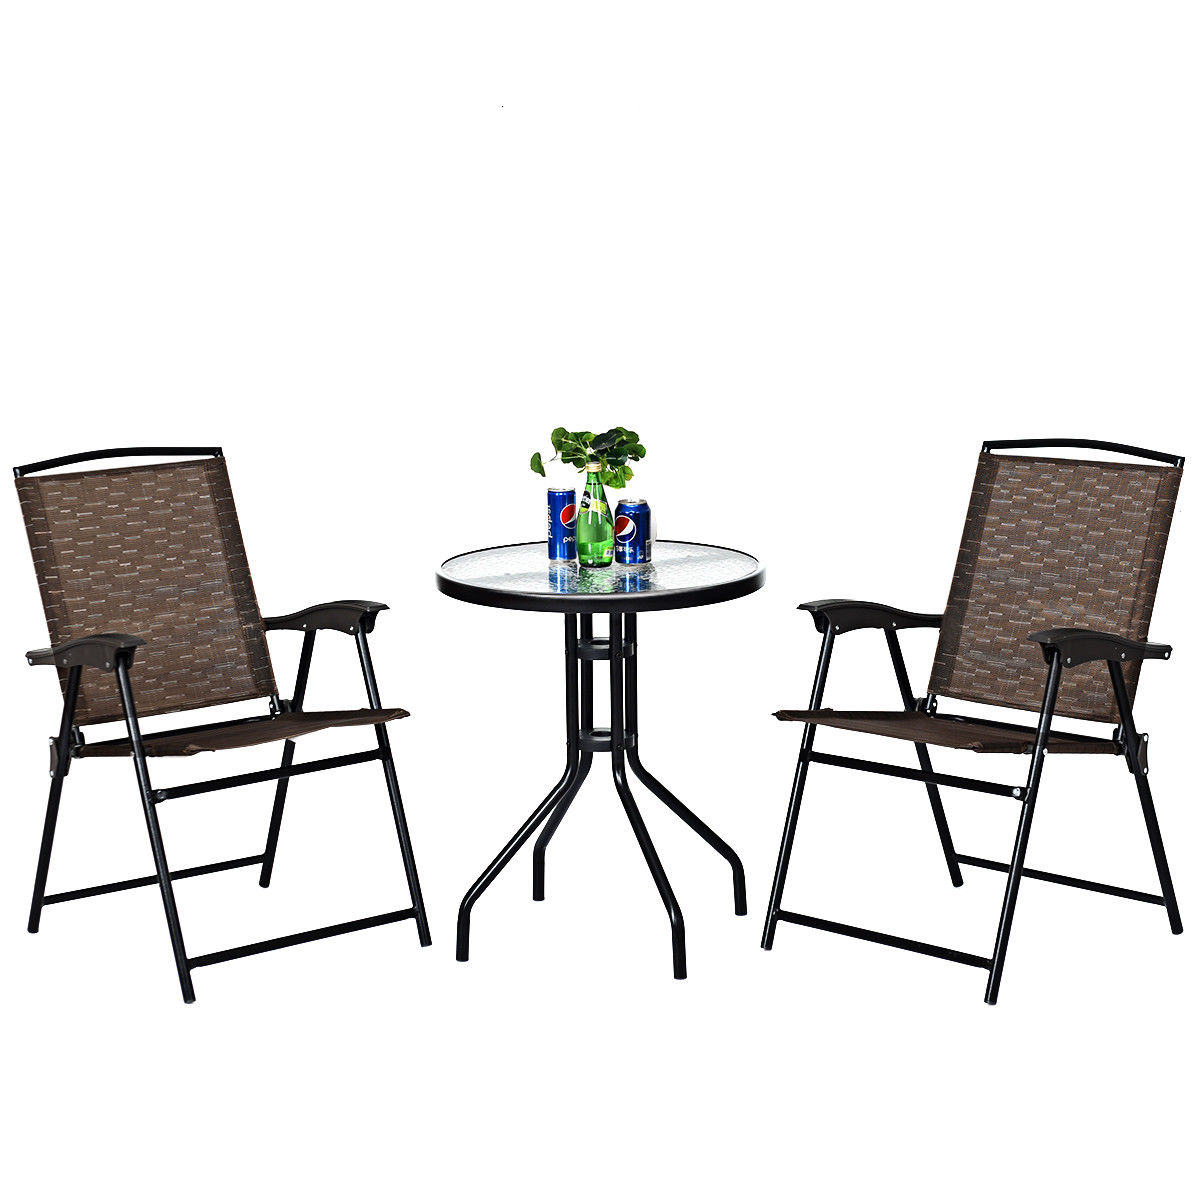 Picture of: Costway 3pc Bistro Patio Garden Furniture Set 2 Folding Chairs Glass Table Top Steel Aliexpress